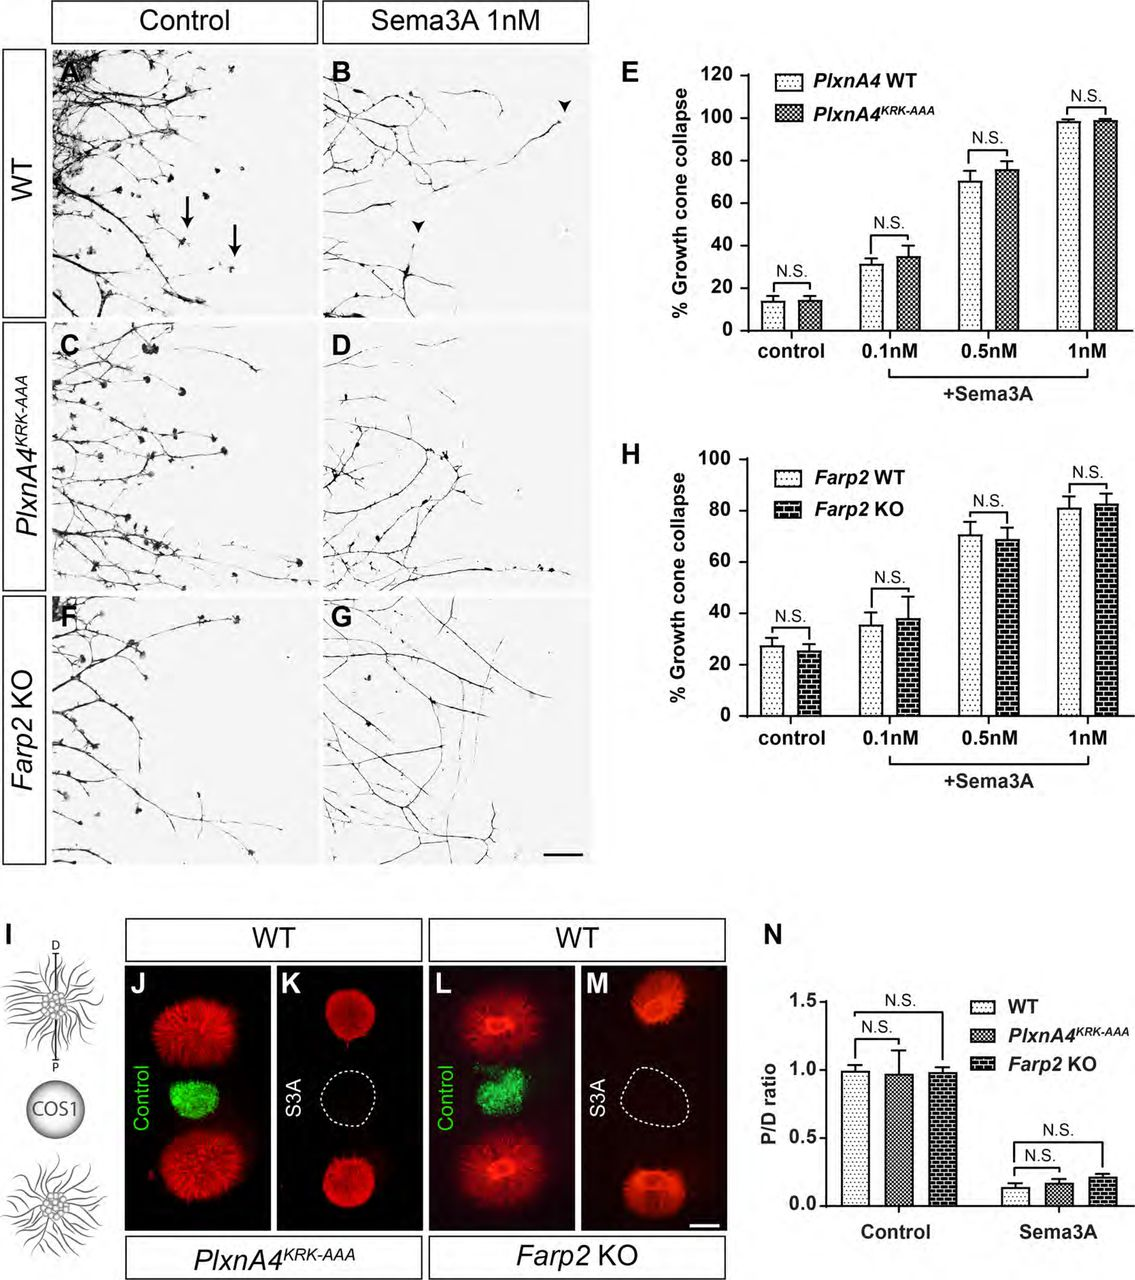 PlxnA4 KRK-AAA and Farp2 KO DRG axons show intact Sema3A-dependent responses in vitro . A-H , DRG explants from WT ( A-B ), PlxnA4 KRK-AAA ( C-D ) and Farp2 KO ( F-G ) E13.5 embryos were grown for 48hr, treated with 0.1, 0.5 or 1nM AP-Sema3A (only 1nM is shown) or control conditioned media and stained using Phalloidin-Rhodamine to visualize growth cone collapse. Arrows indicate intact growth cones and arrowheads indicate collapsed growth cones. Quantification of collapse response ( E and H ) as a mean percentage of collapsed growth cones out of the total ± SEM; N.S., non-significant; two-way ANOVA with post hoc Tukey test. Scale bar, 50μm. I-M , Schematic representation of the collagen axonal repulsion assay ( I ), where E13.5 DRG explants from PlxnA4 KRK-AAA and WT littermates ( J-K ) or Farp2 KO and WT littermates ( L-M ) were co-cultured for 48hrs with a COS1 aggregate either secreting myc-Sema3A (dashed circle) or expressing control PAY1-GFP (green). Cultures were visualized using anti-Tubulin class III immuno-staining. N , Quantification of axonal repulsion using the proximal/distal (P/D) ratio, as indicated in ( I ). Data are means ± SEM; N.S., non-significant, Student's t-test. Scale bar, 500μm.